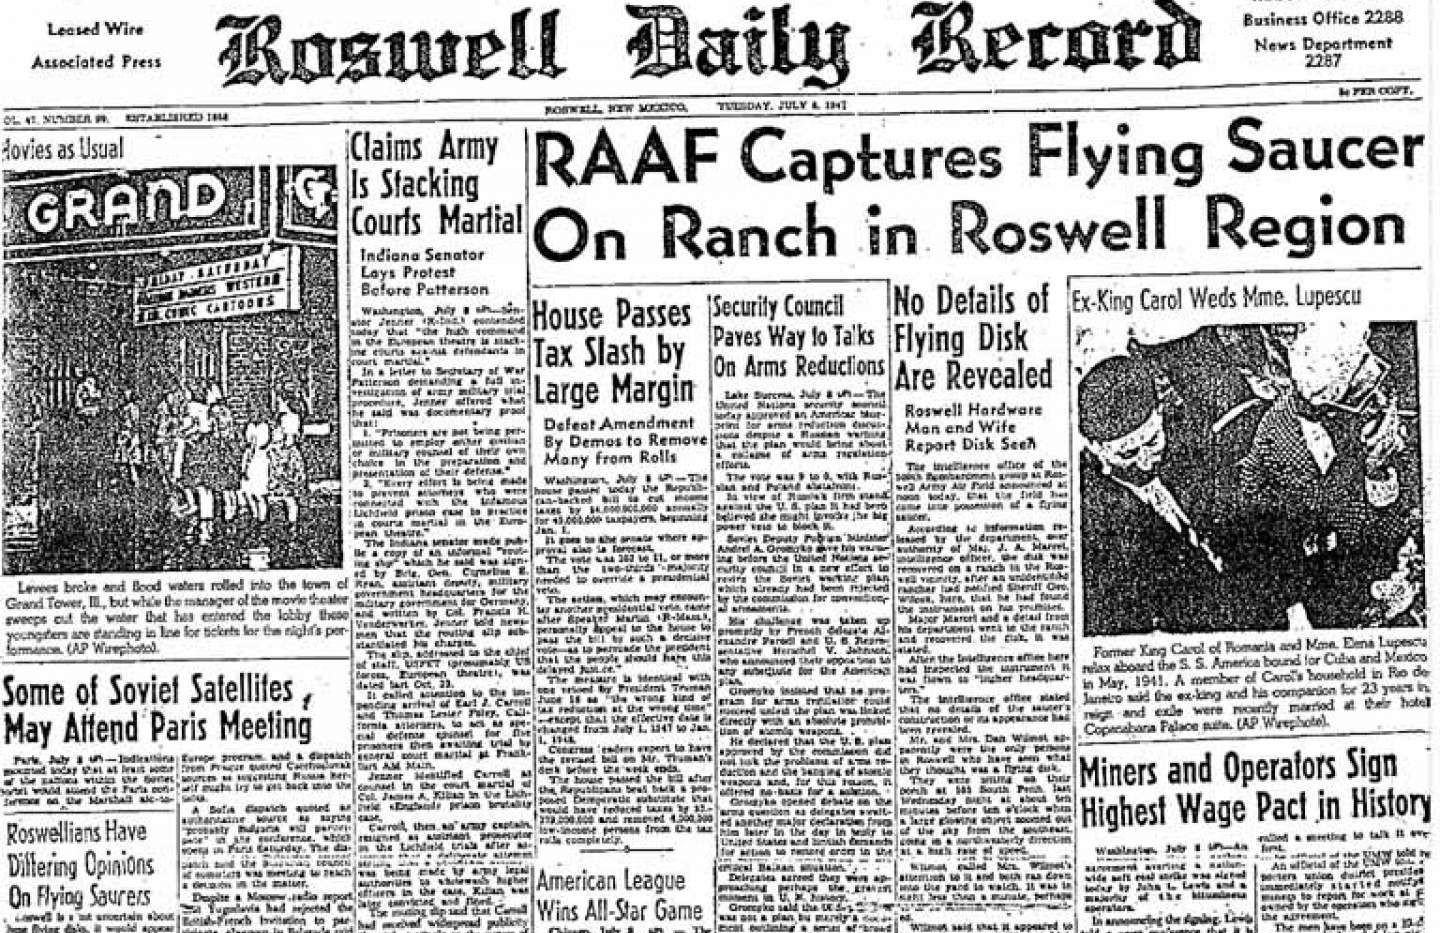 Roswell headlines after the 1947 crash